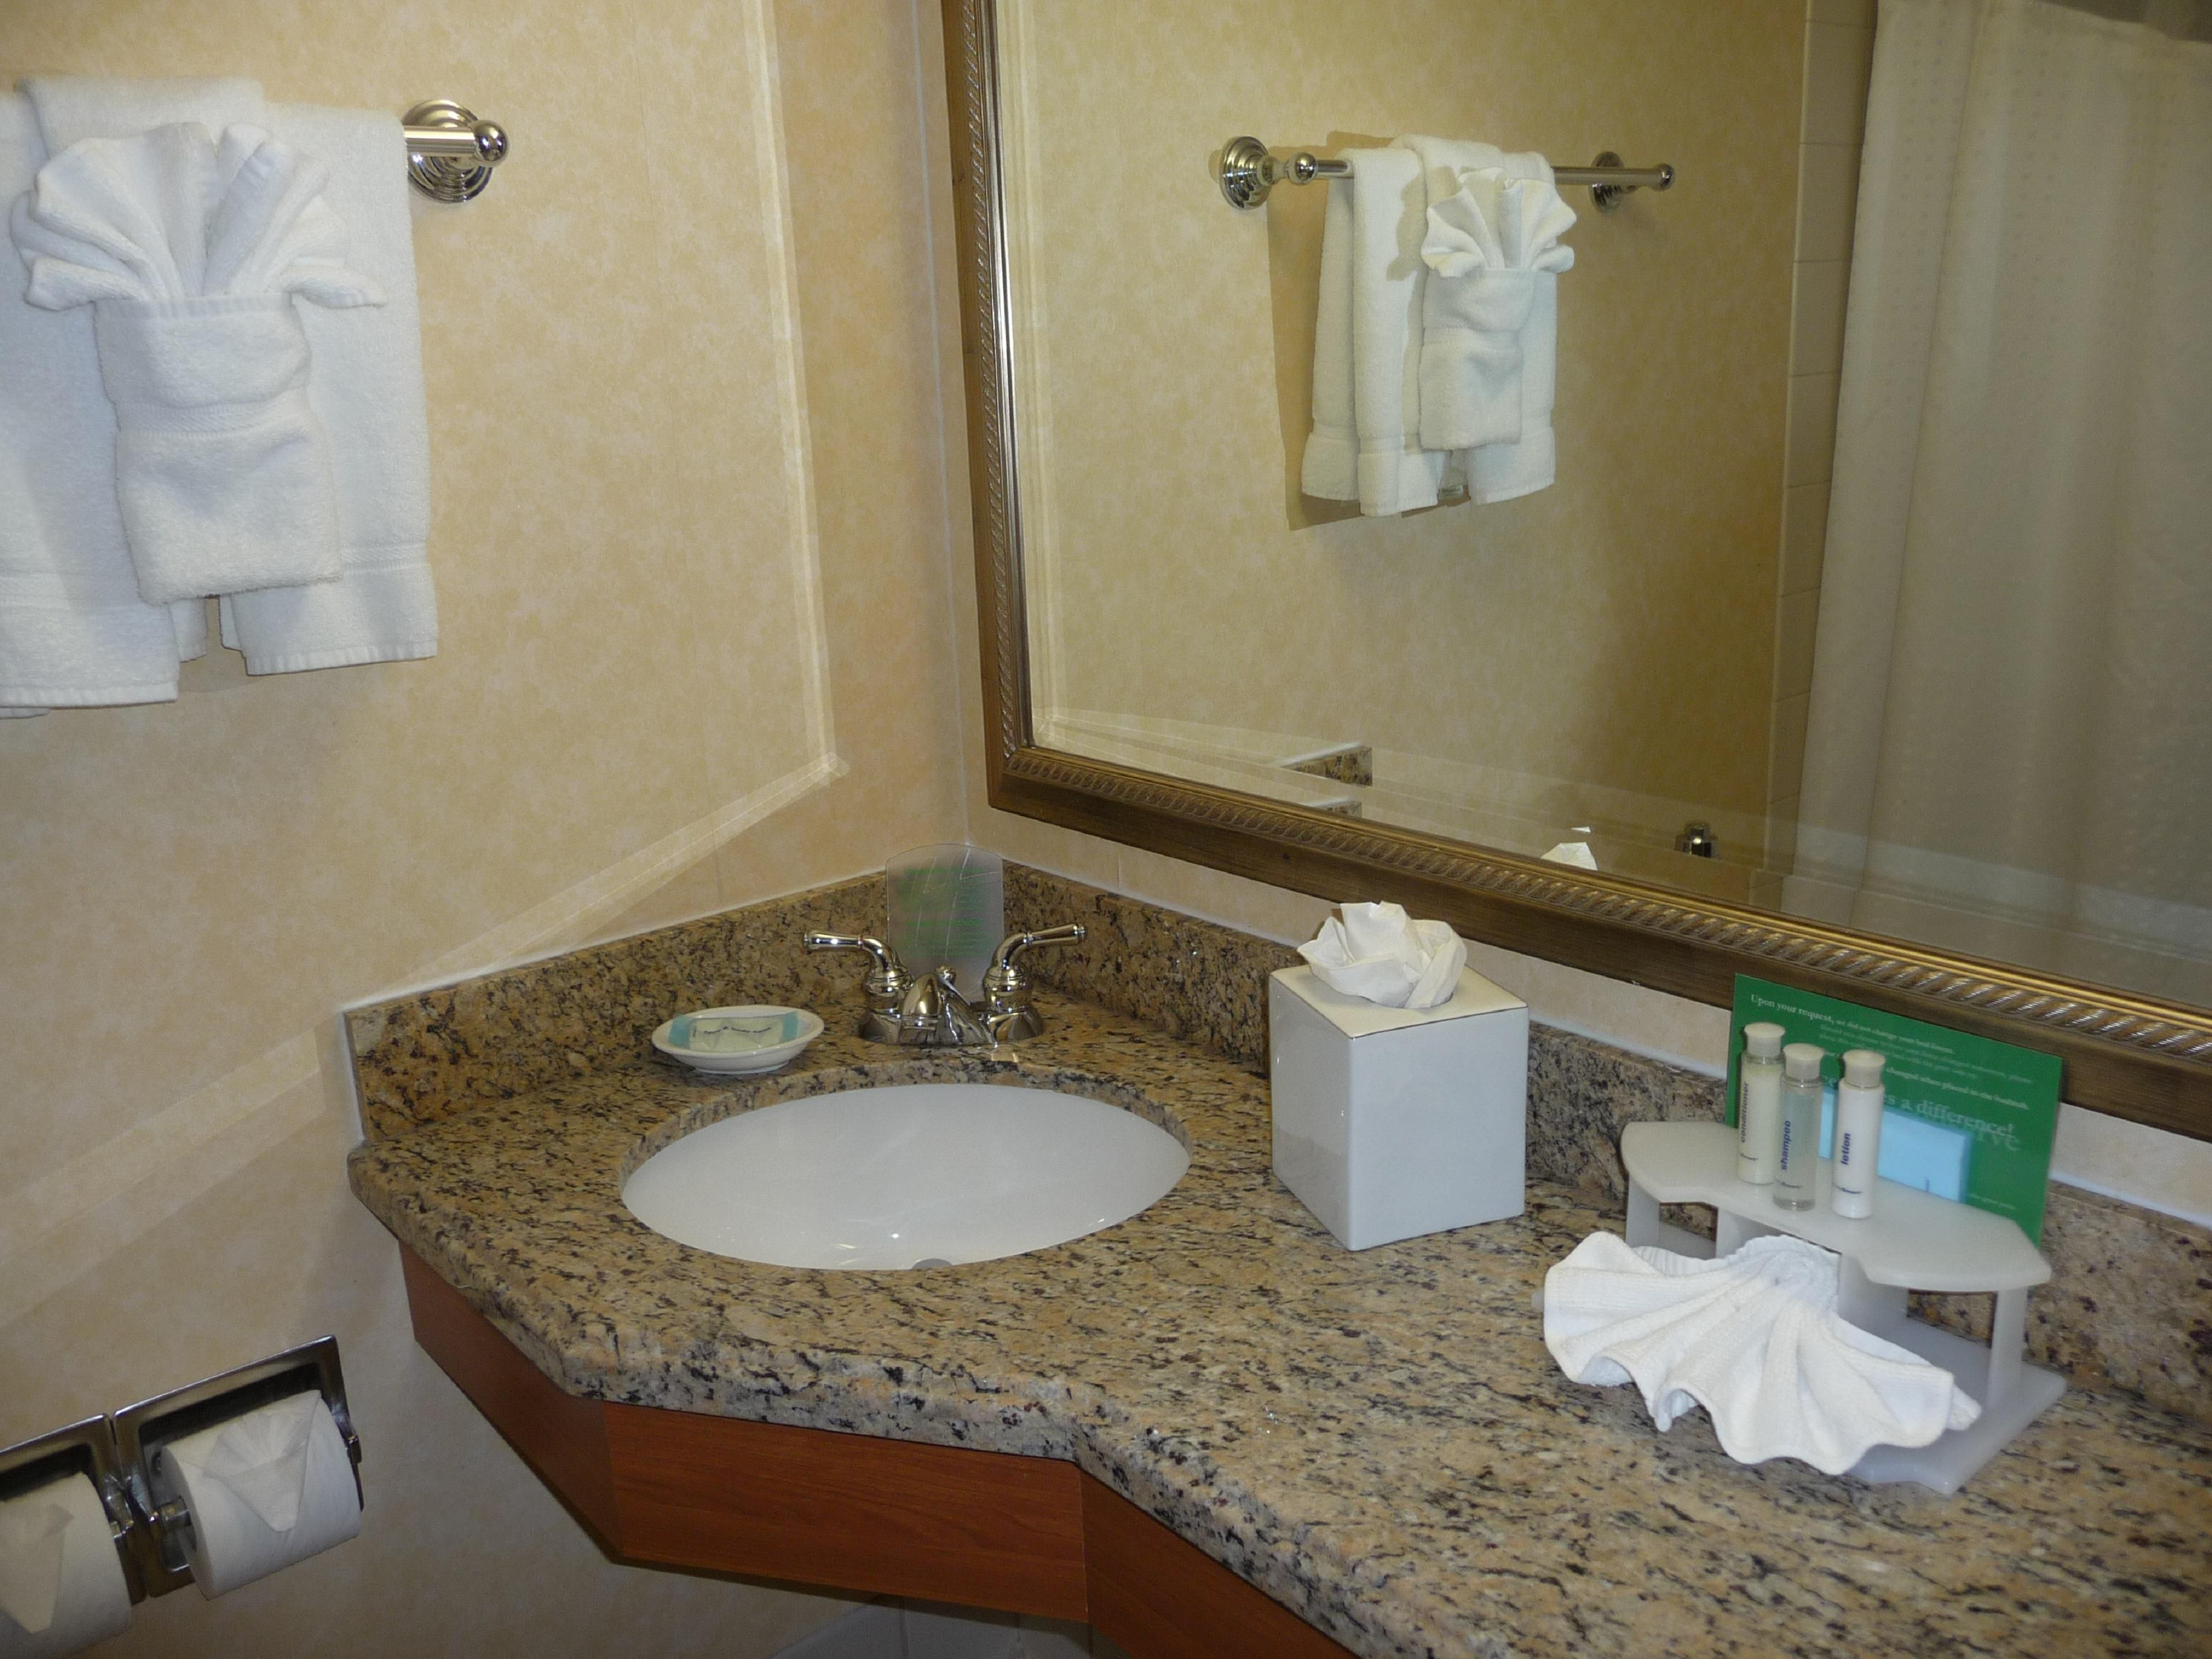 Holiday Inn Express Standard Guest Bathroom with granite vanity